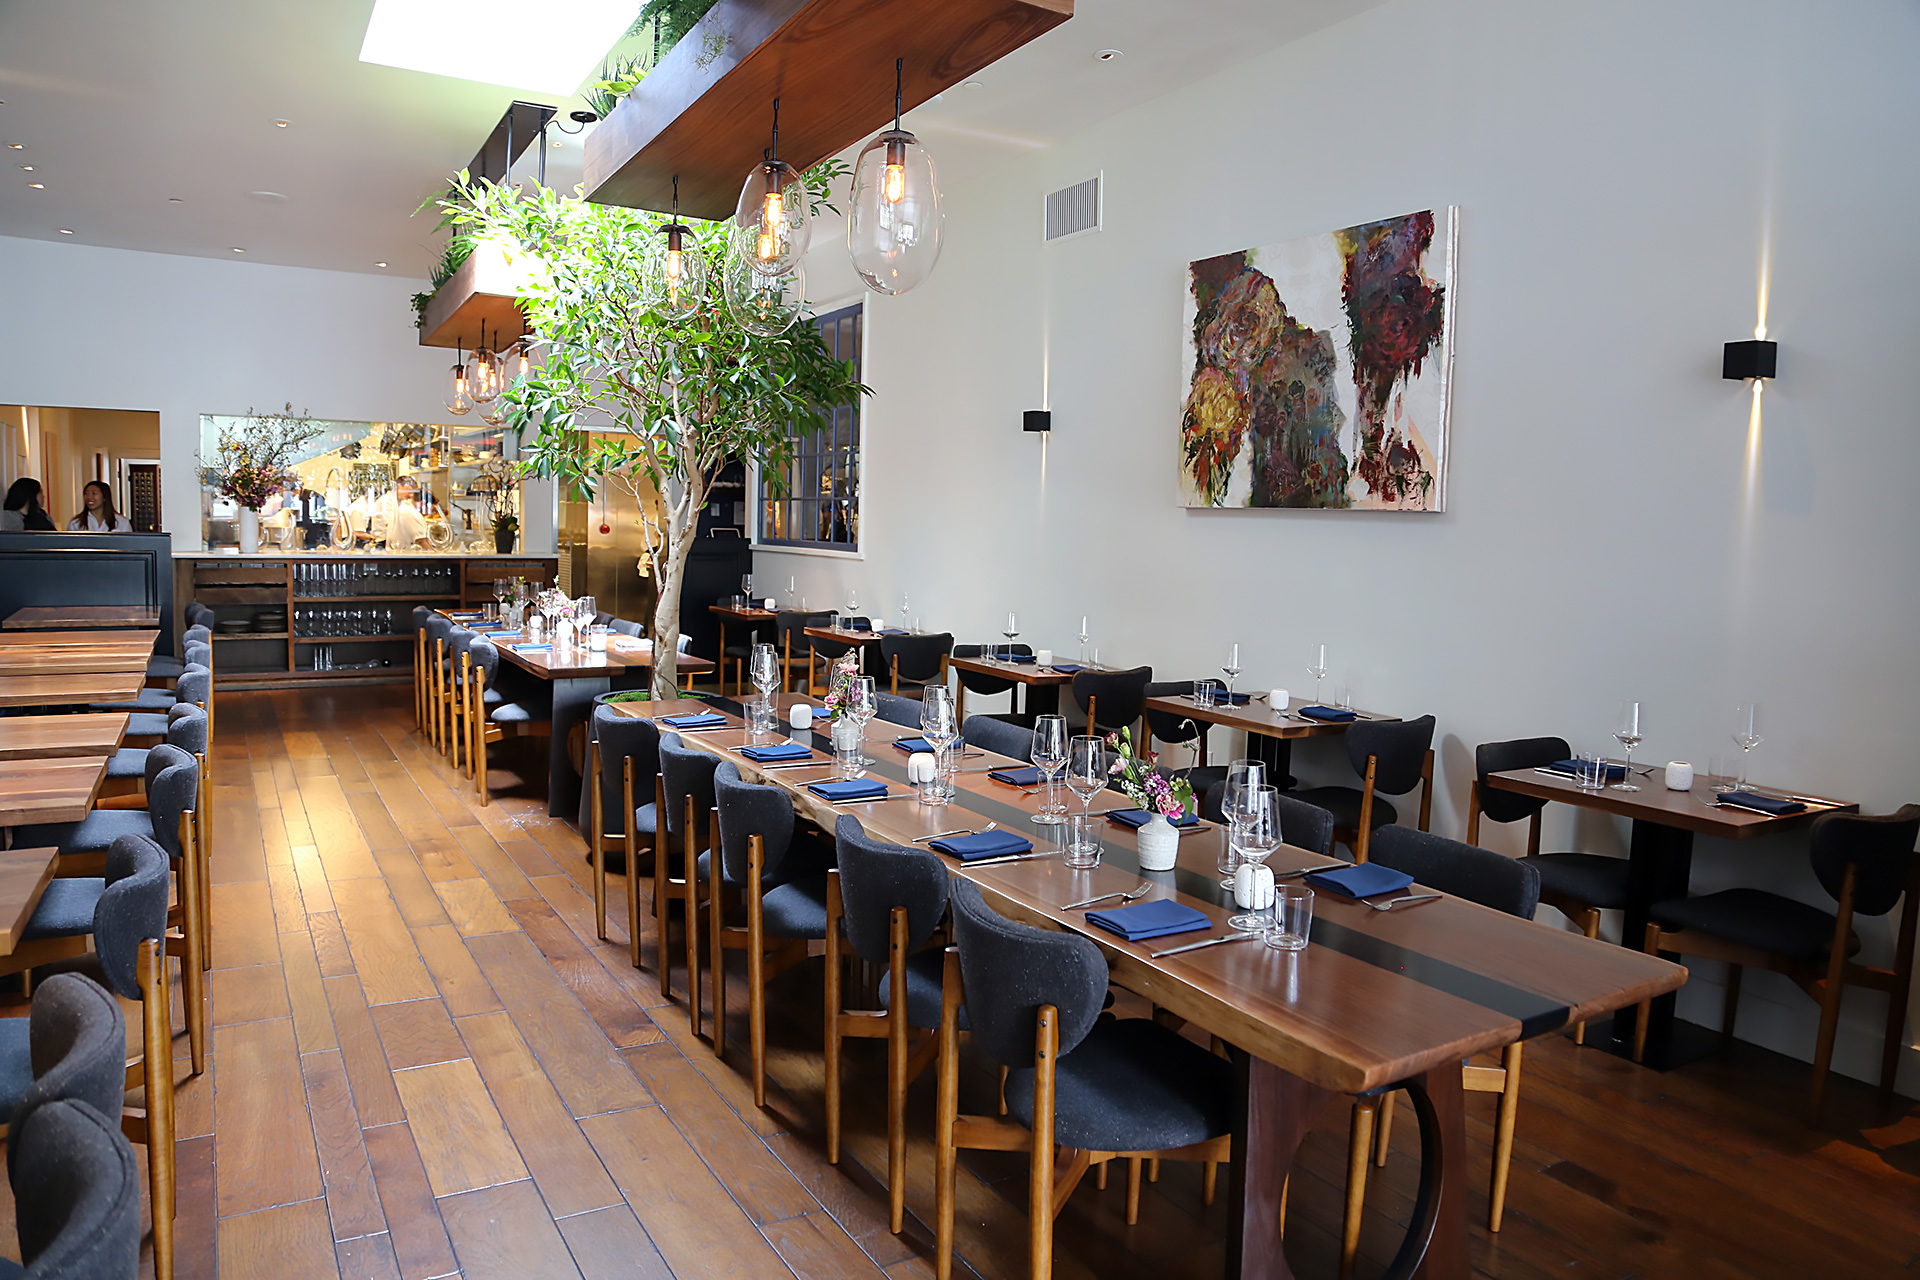 Interior main dining space at Sorrel